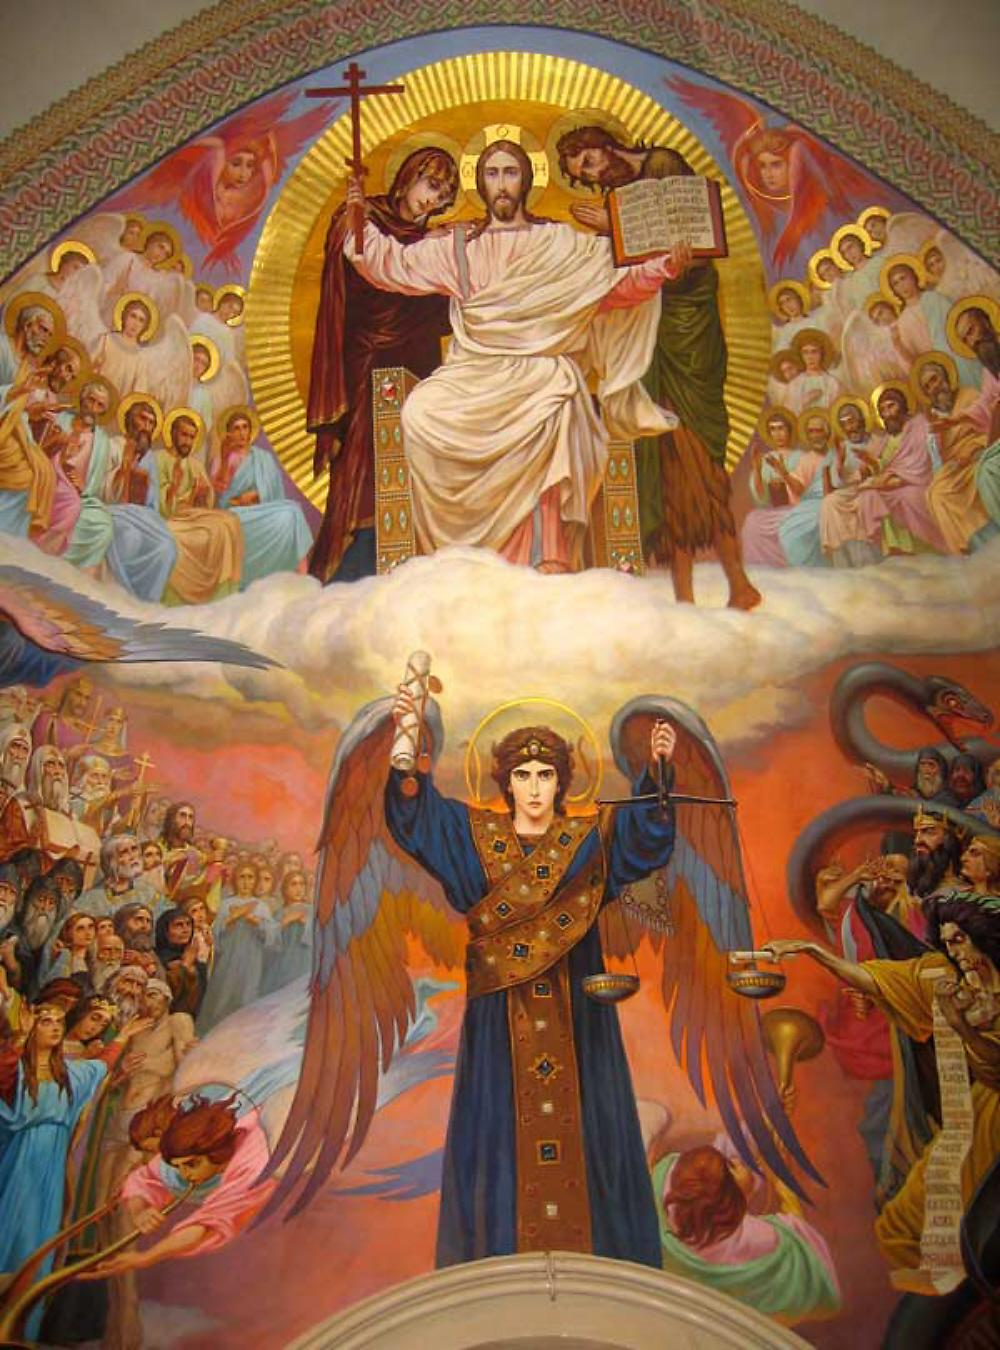 Unknown Artist. The Last Judgement. Church of the Mother of God 'of Kazan'. Togliatti RF. 2001